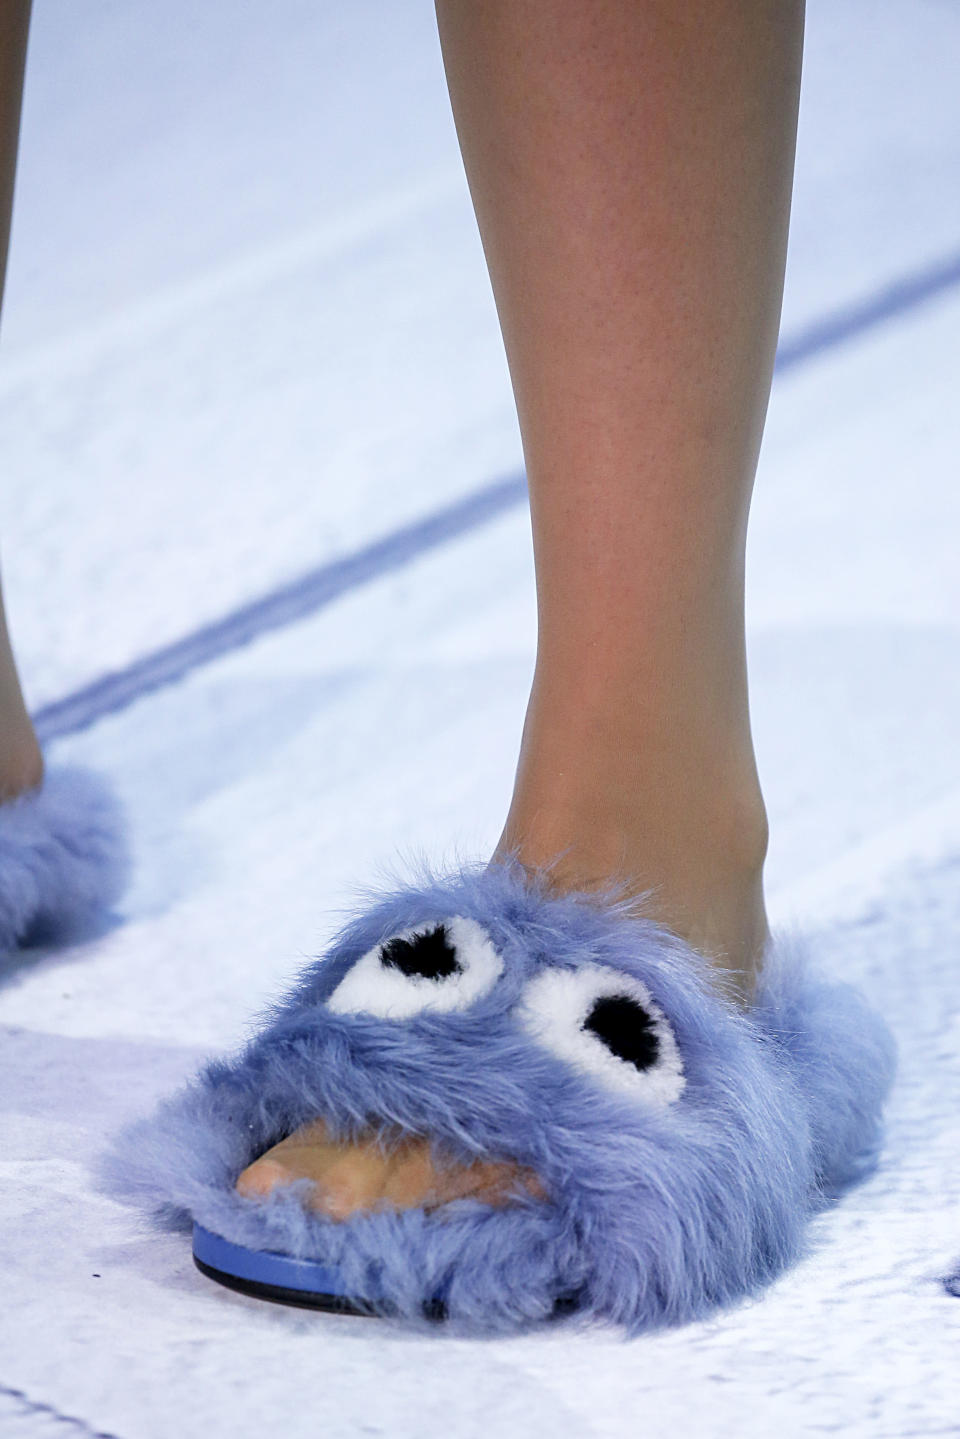 Fur accessories are also big business in the fashion industry [Photo: Anya Hindmarch via Getty]